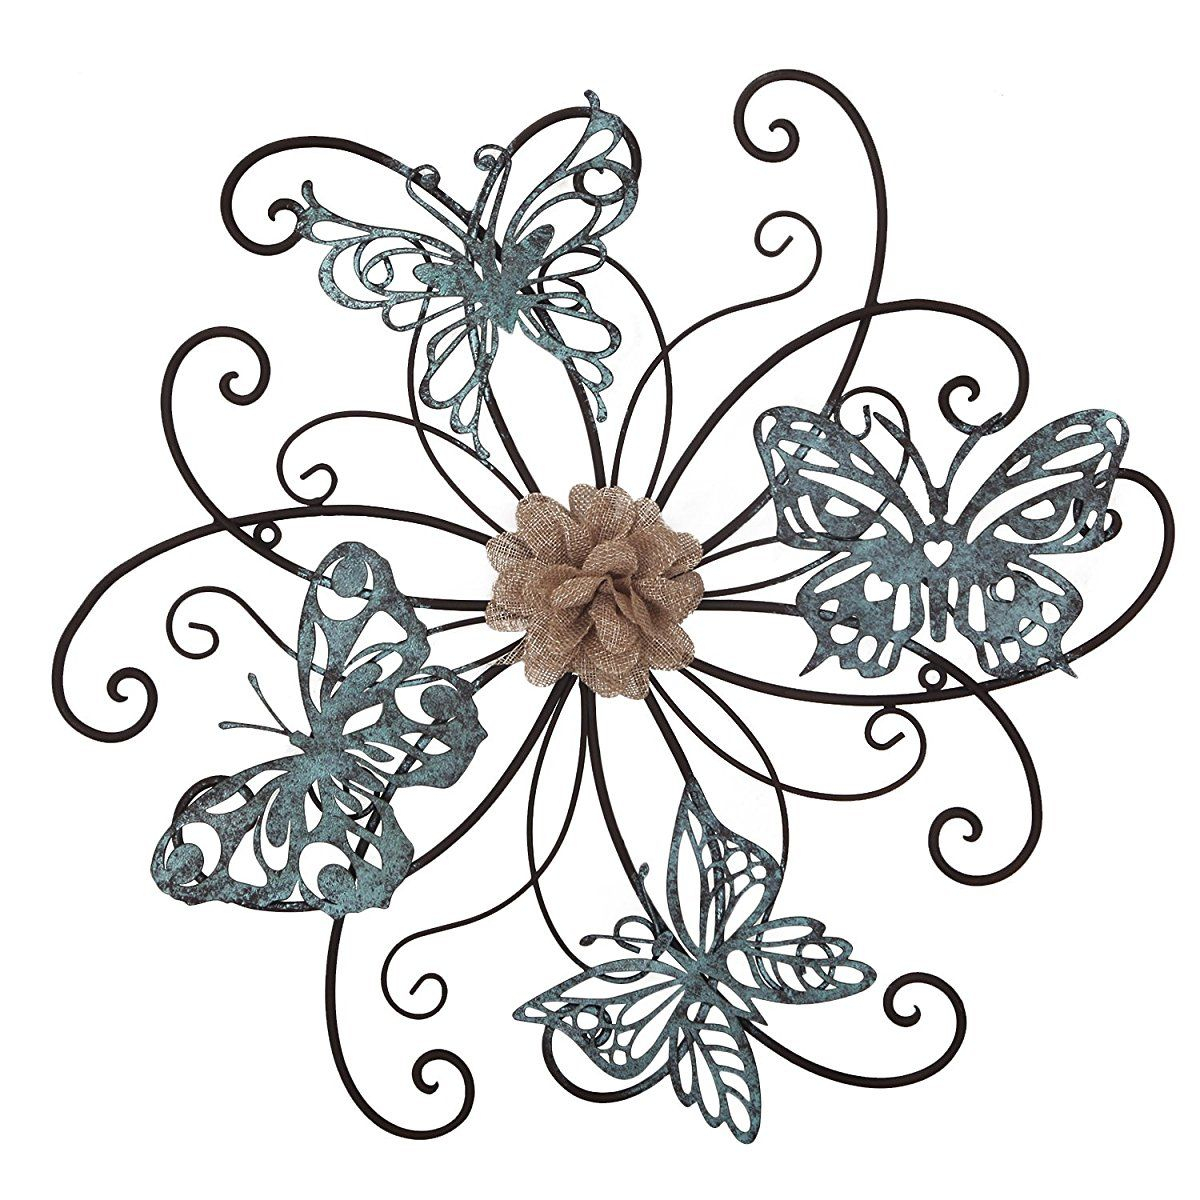 Homes Art Flower And Butterfly Urban Design Metal Wall Decor inside Flower Urban Design Metal Wall Decor (Image 18 of 30)